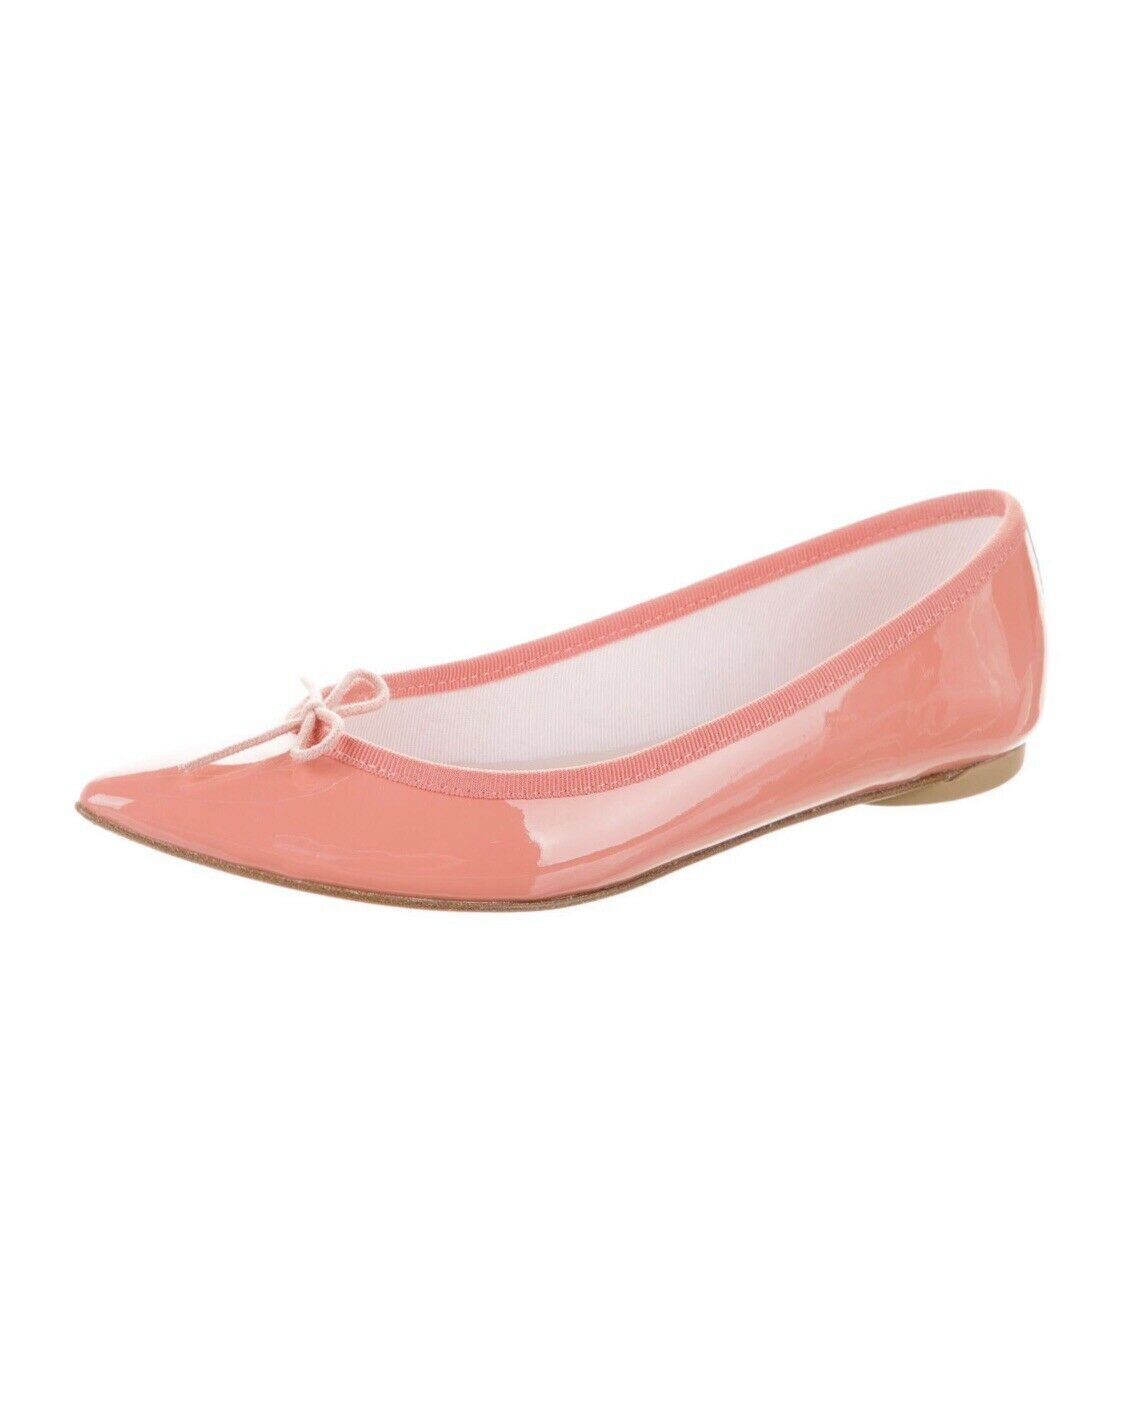 Repetto Shoes - image 2